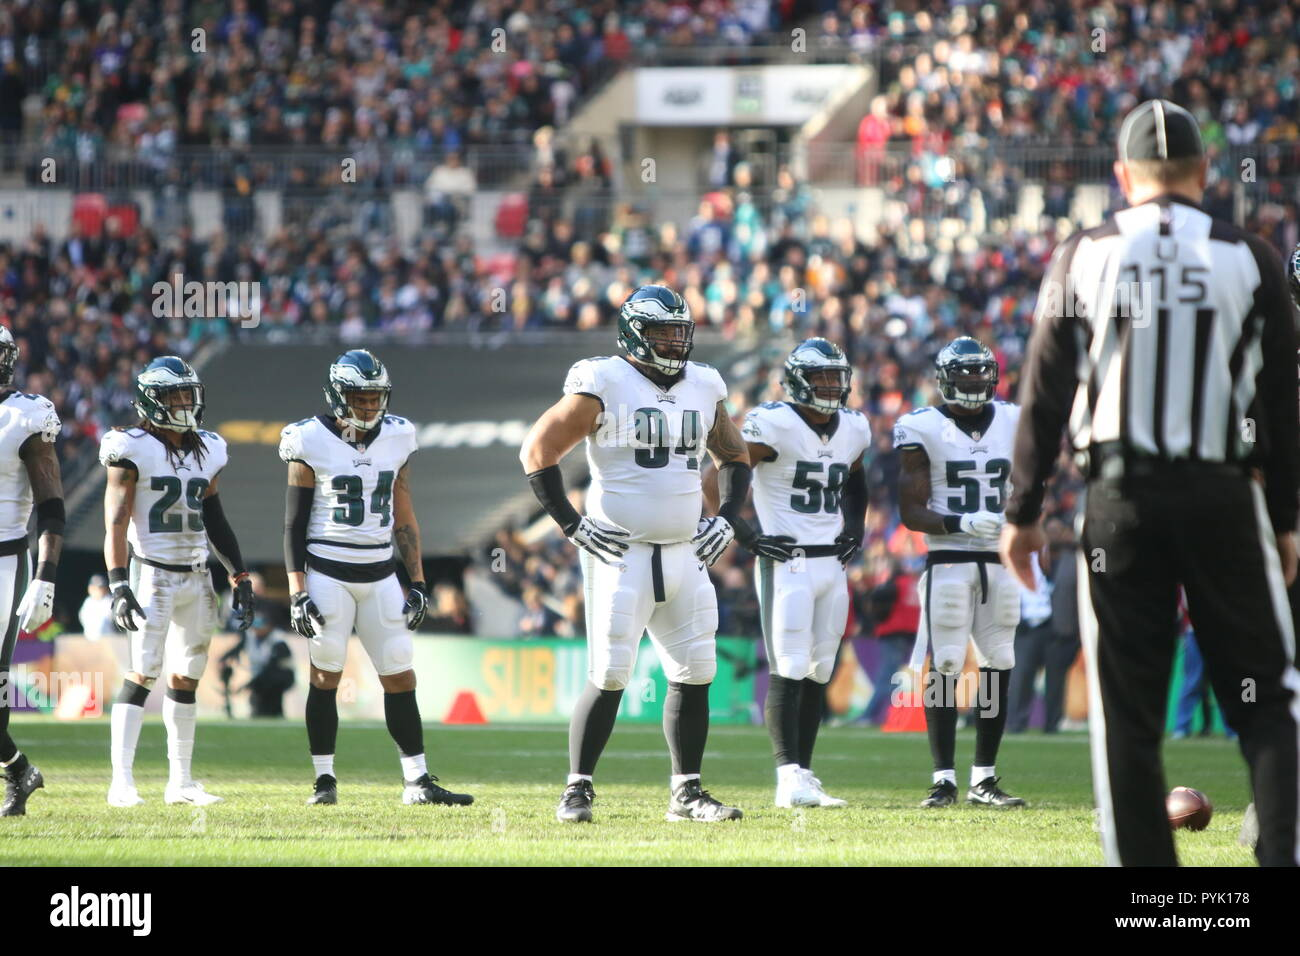 London, UK. 28 October 2018.  Philadelphia Eagles Defensive Tackle Haloti Ngata (94)  at the Eagles at Jaguars - credit Glamourstock Credit: glamourstock/Alamy Live News - Stock Image